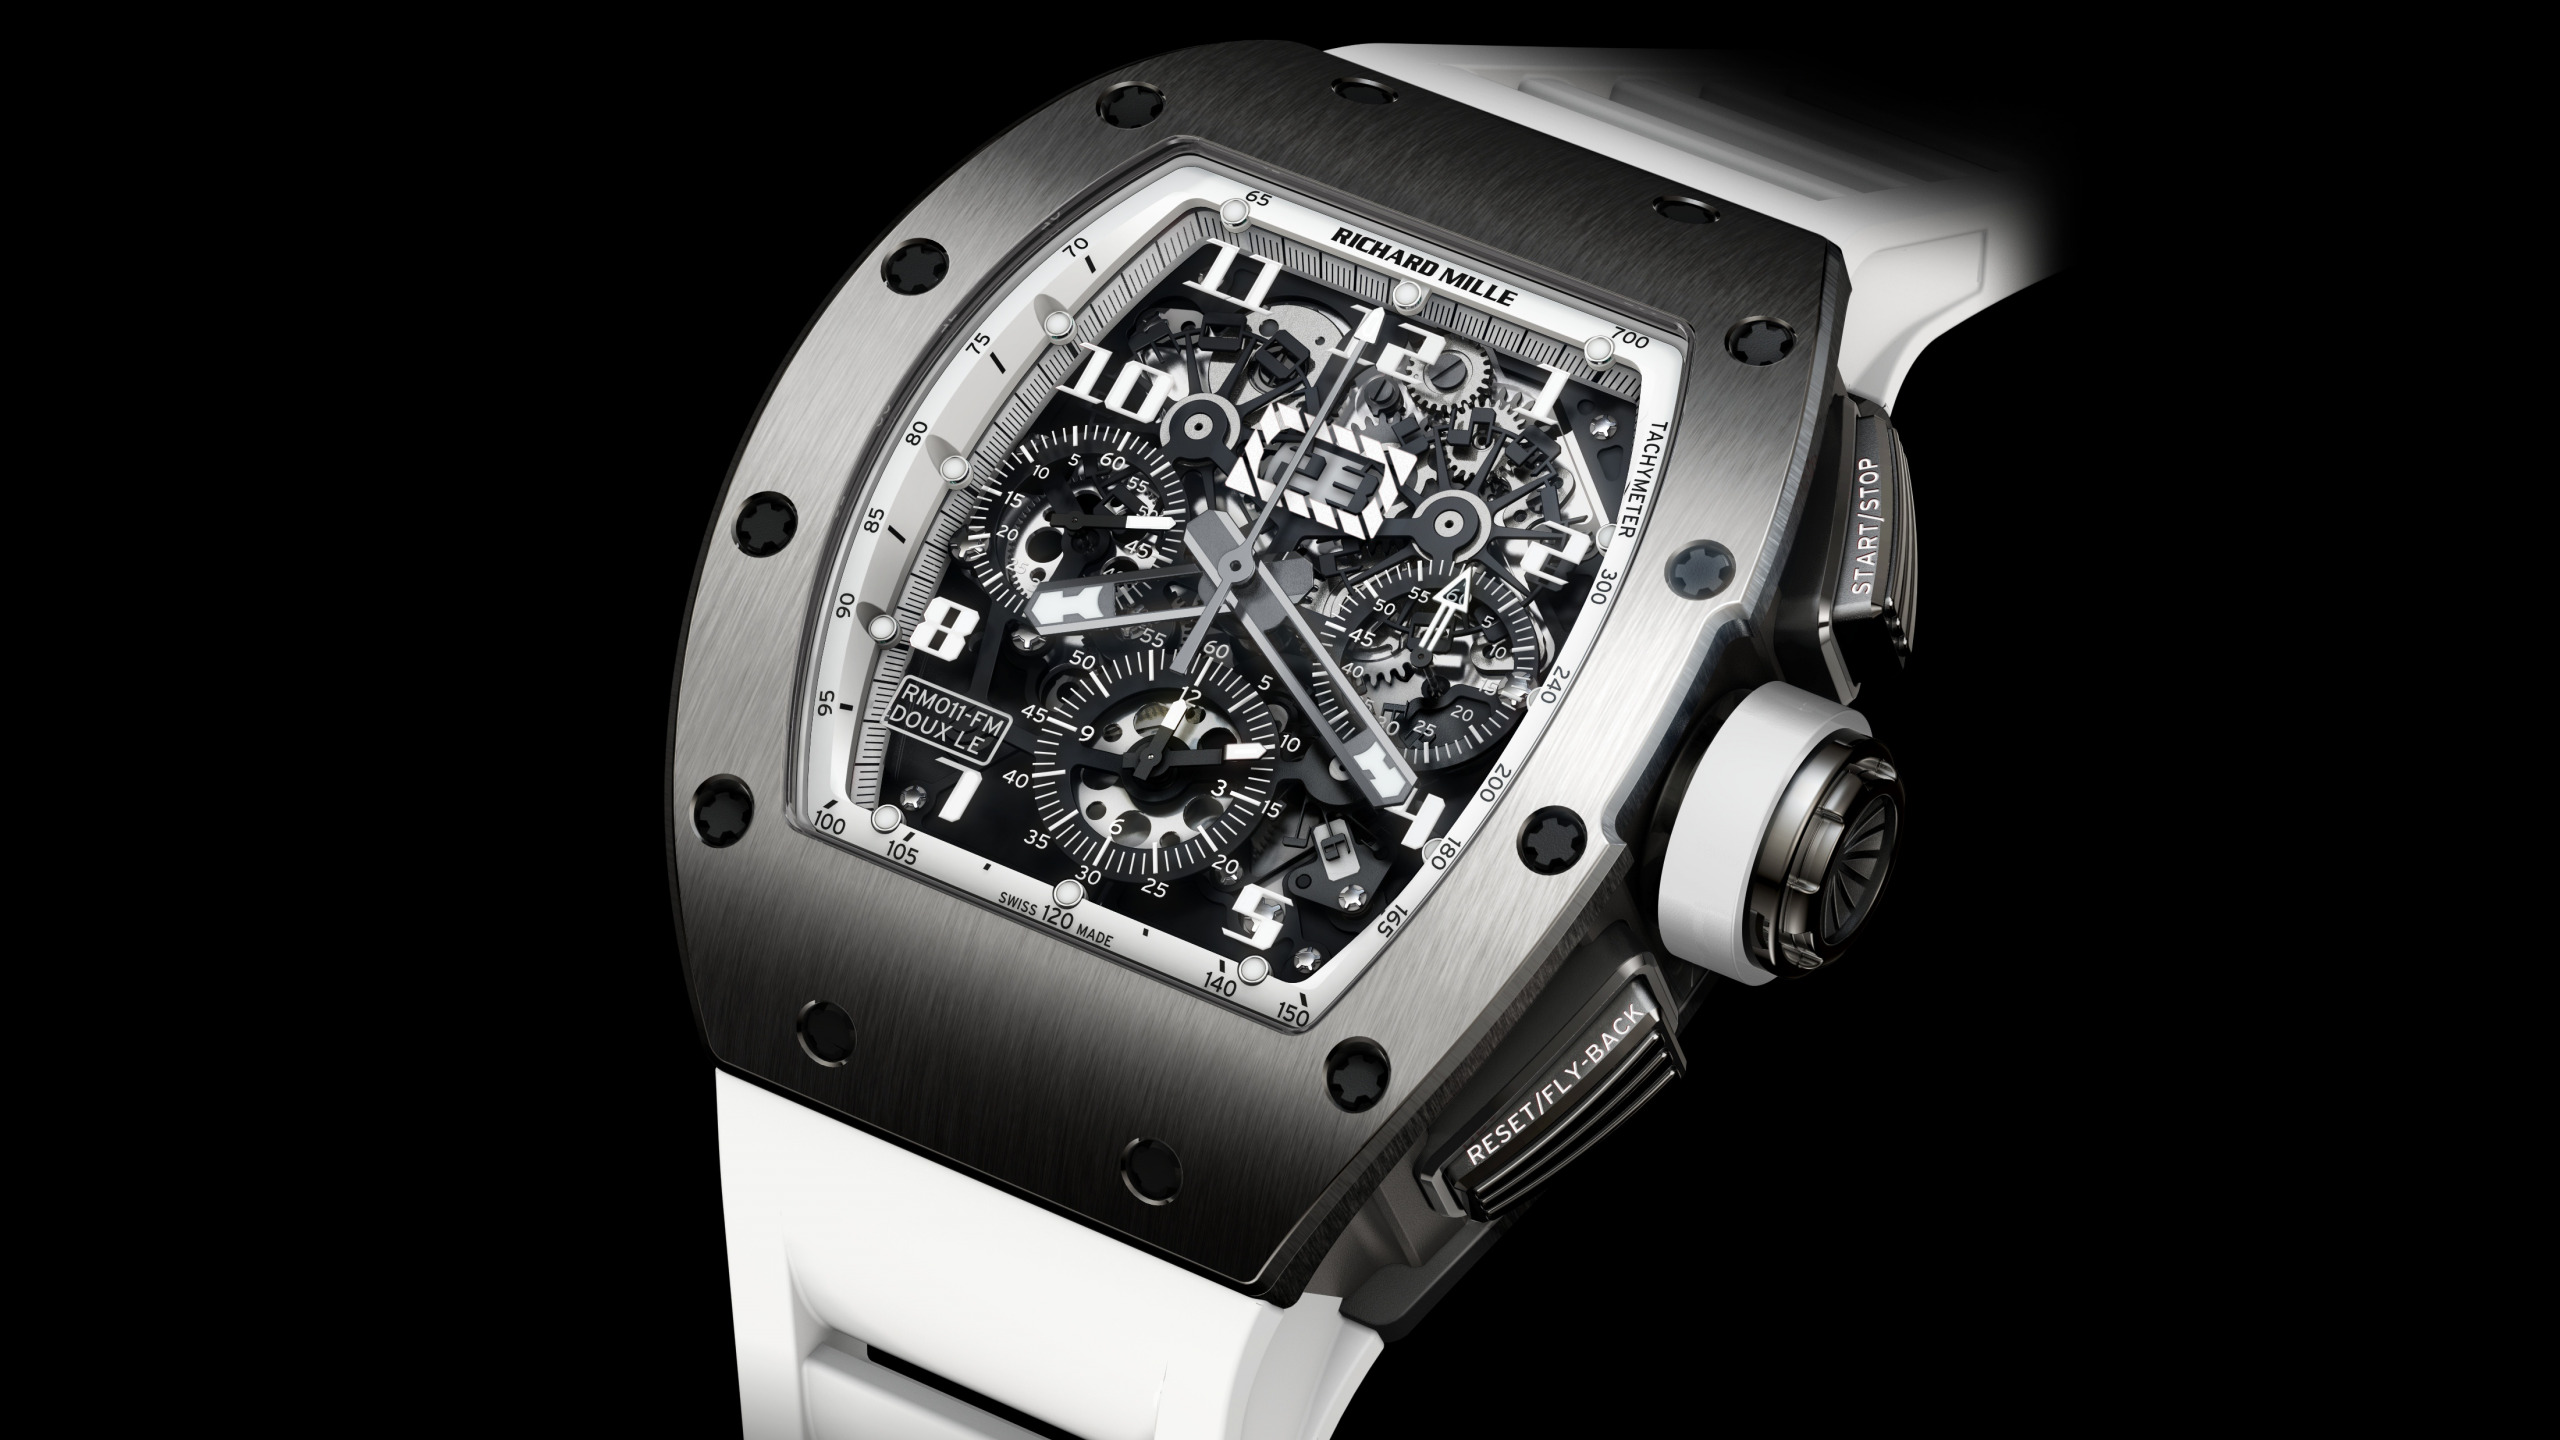 Download Wallpaper Time Watch Time Watch Chronometer